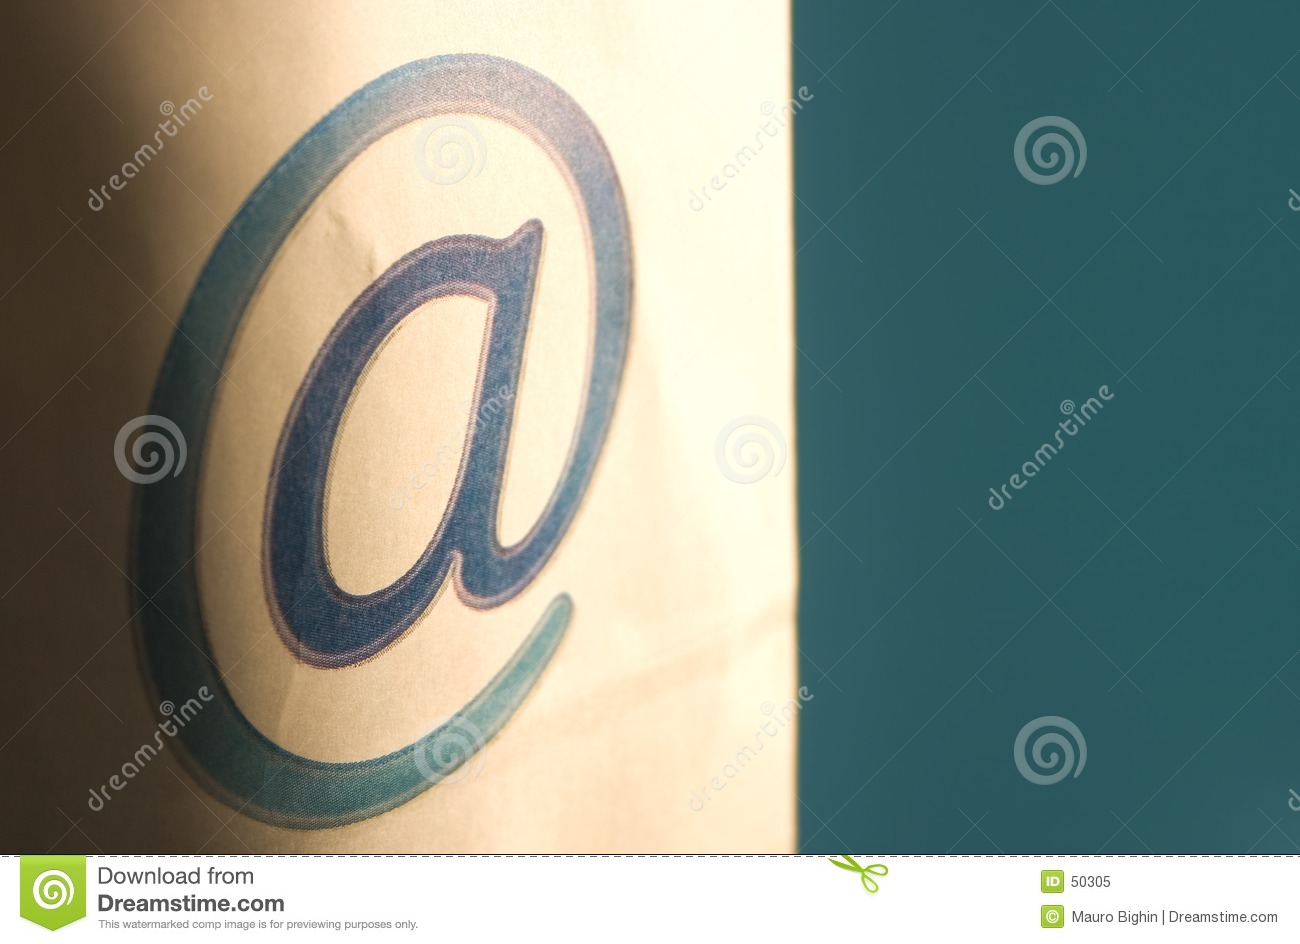 Download Transmission d'email - @ image stock. Image du recherche - 50305